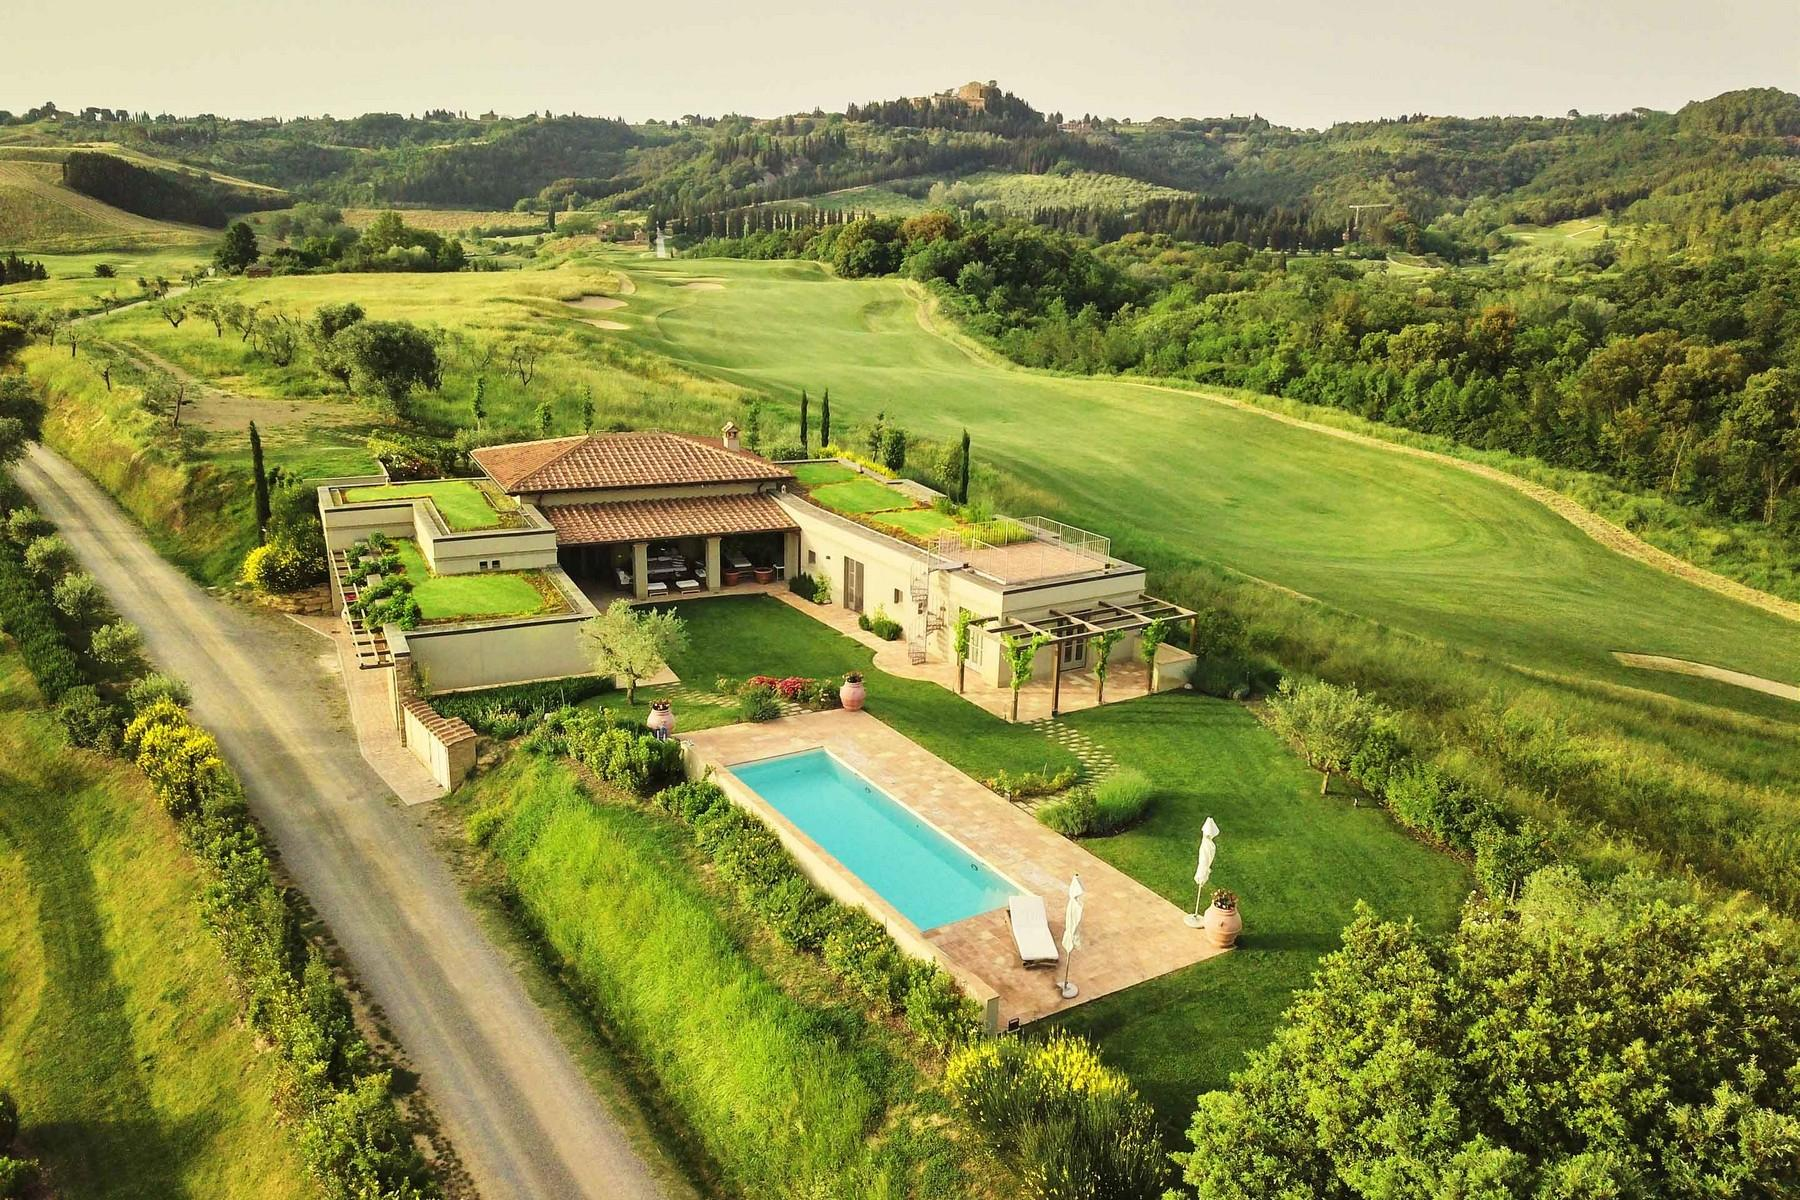 Marvellous new build villas in the Tuscan countryside - 11